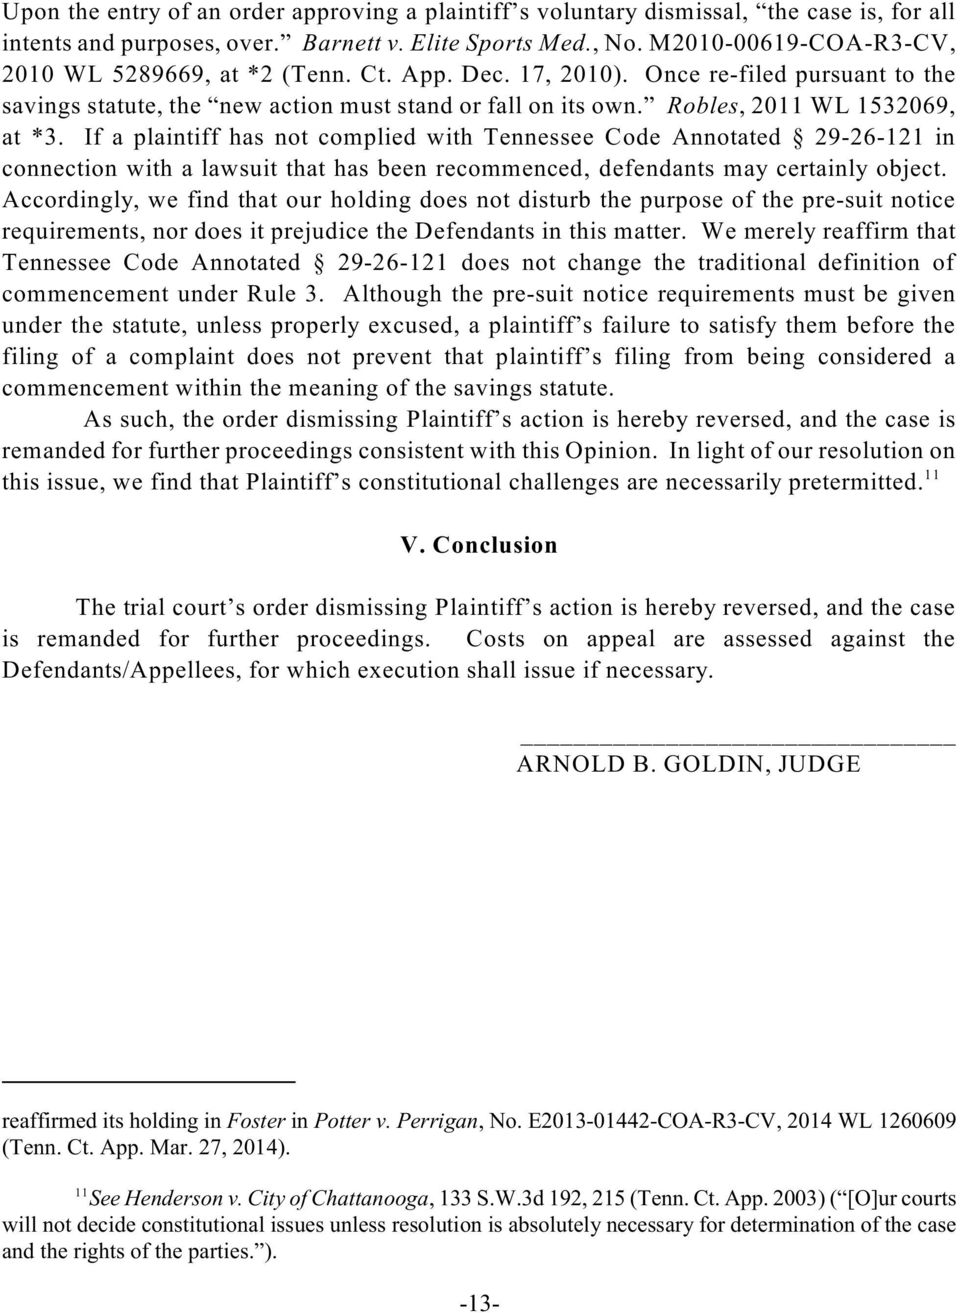 Robles, 2011 WL 1532069, at *3. If a plaintiff has not complied with Tennessee Code Annotated 29-26-121 in connection with a lawsuit that has been recommenced, defendants may certainly object.